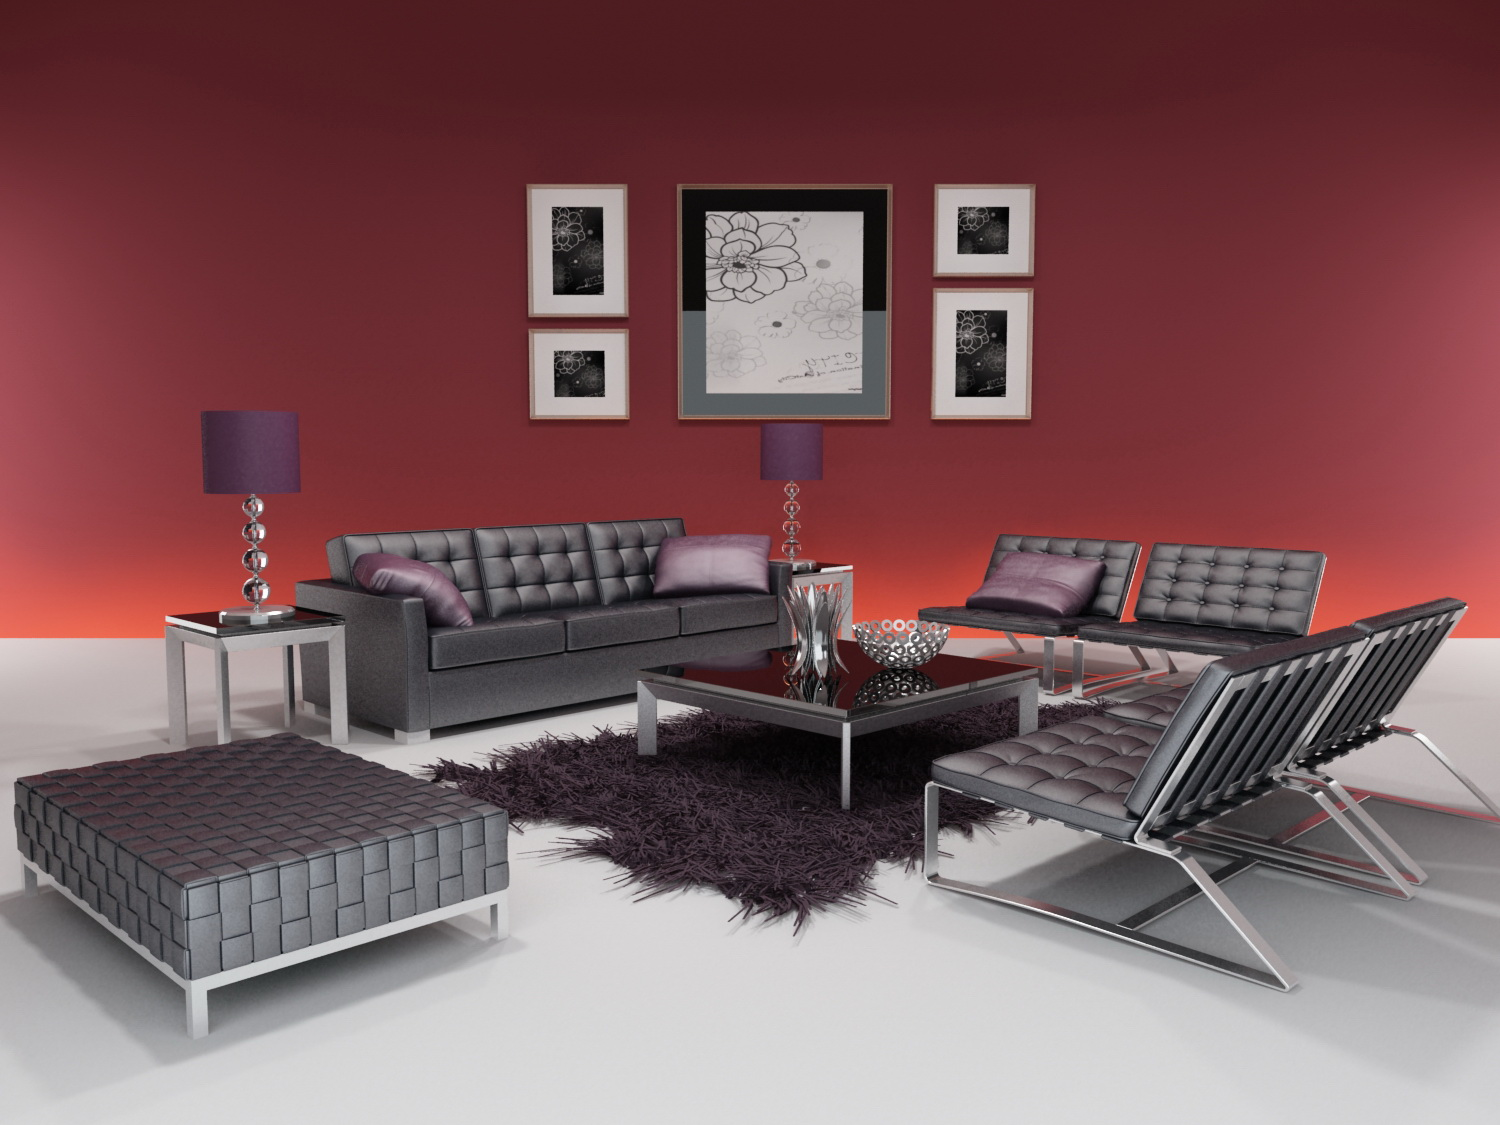 Link to3d model of the whole furniture of modern style (including materials)